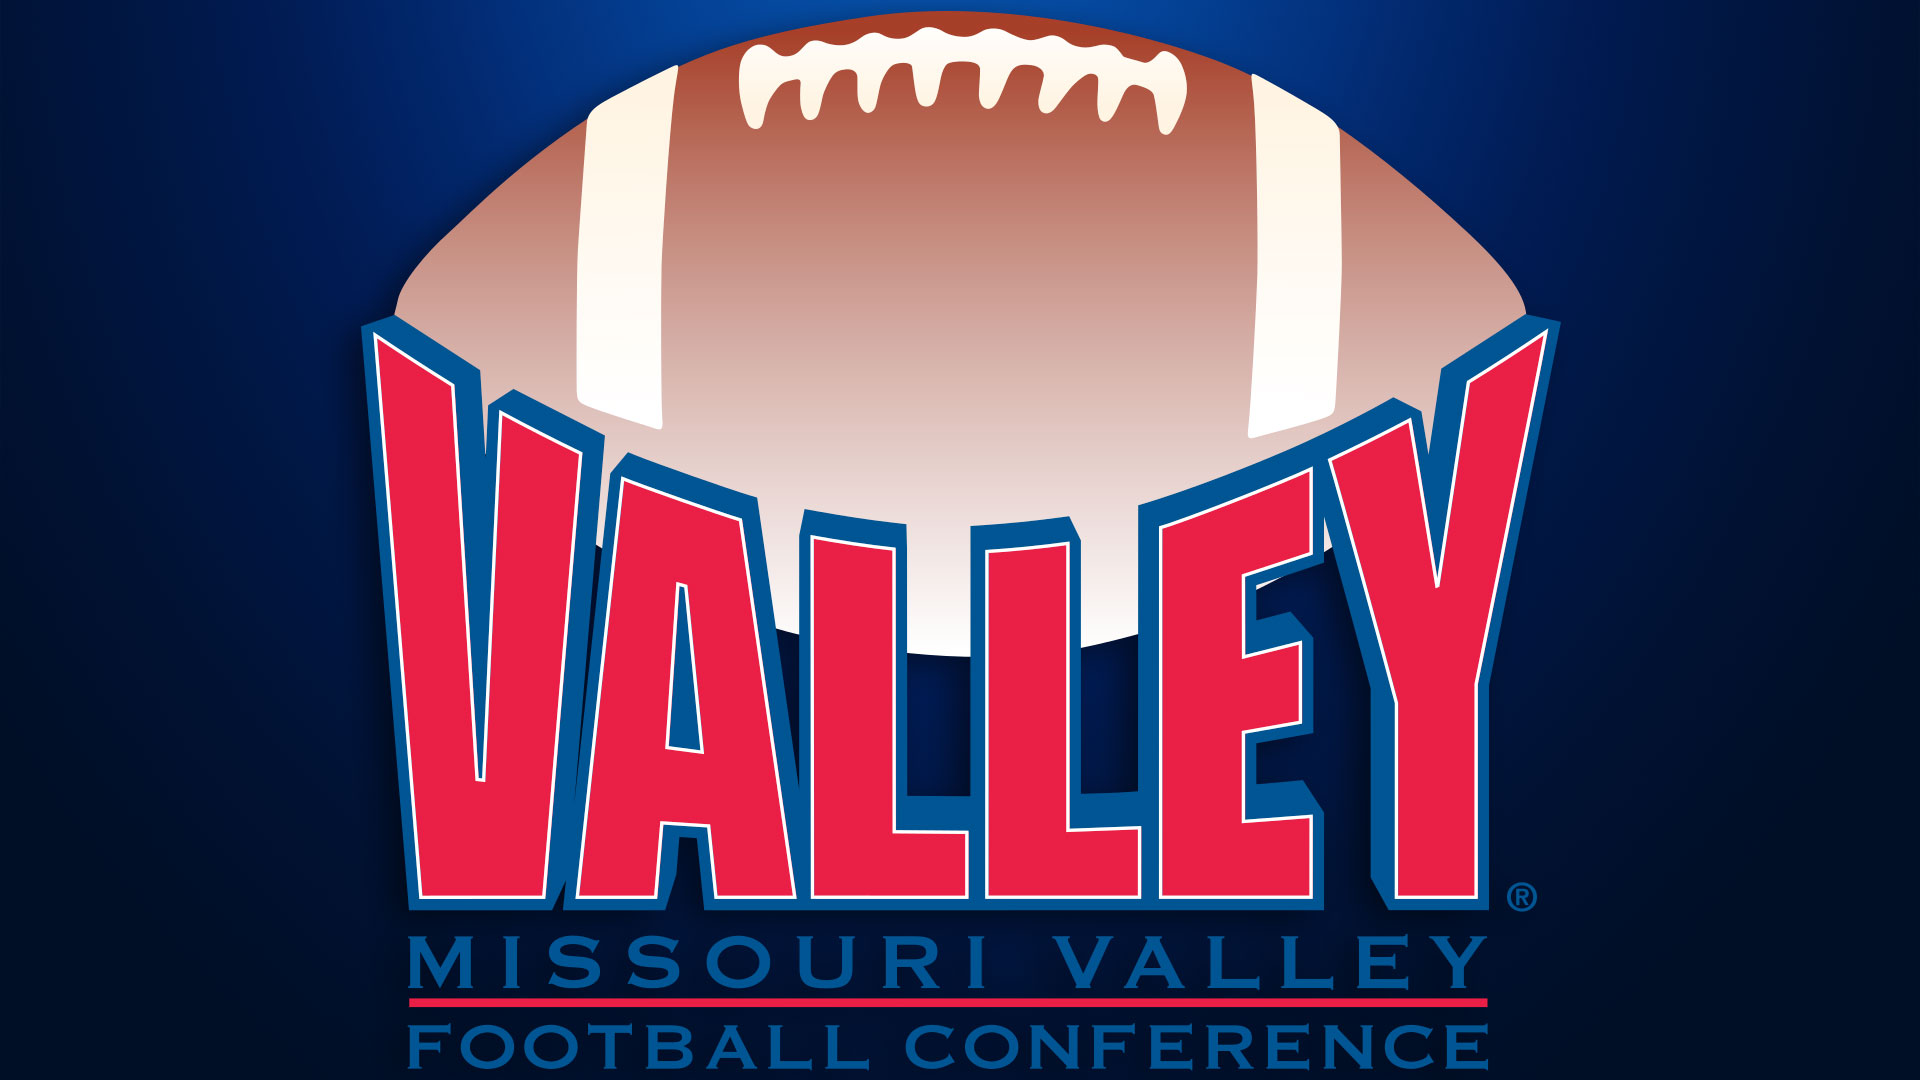 KELO Missouri Valley FB Logo